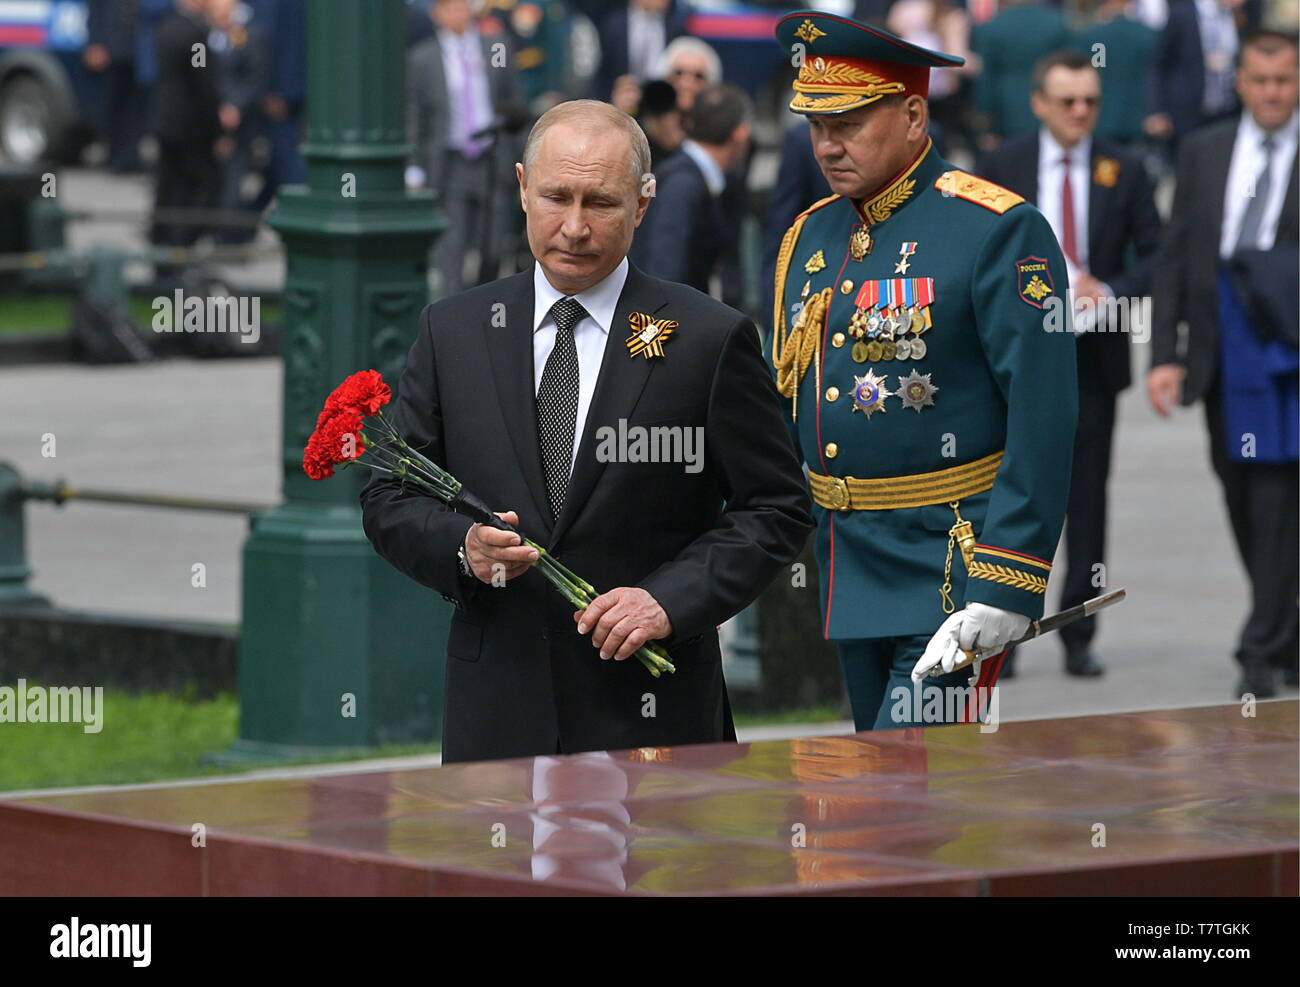 Moscow, Russia. 09th May, 2019. MOSCOW, RUSSIA - MAY 9, 2019: Russia's President Vladimir Putin (front), Russia's Defence Minister Sergei Shoigu (back) during a ceremony to lay flowers at the Tomb of the Unknown Soldier by the Kremlin Wall during celebrations marking the 74th anniversary of the victory of the Soviet Red Army over Nazi Germany in the Great Patriotic War of 1941-45, the Eastern Front of the Second World War. Alexei Druzhinin/Russian Presidential Press and Information Office/TASS Credit: ITAR-TASS News Agency/Alamy Live News - Stock Image